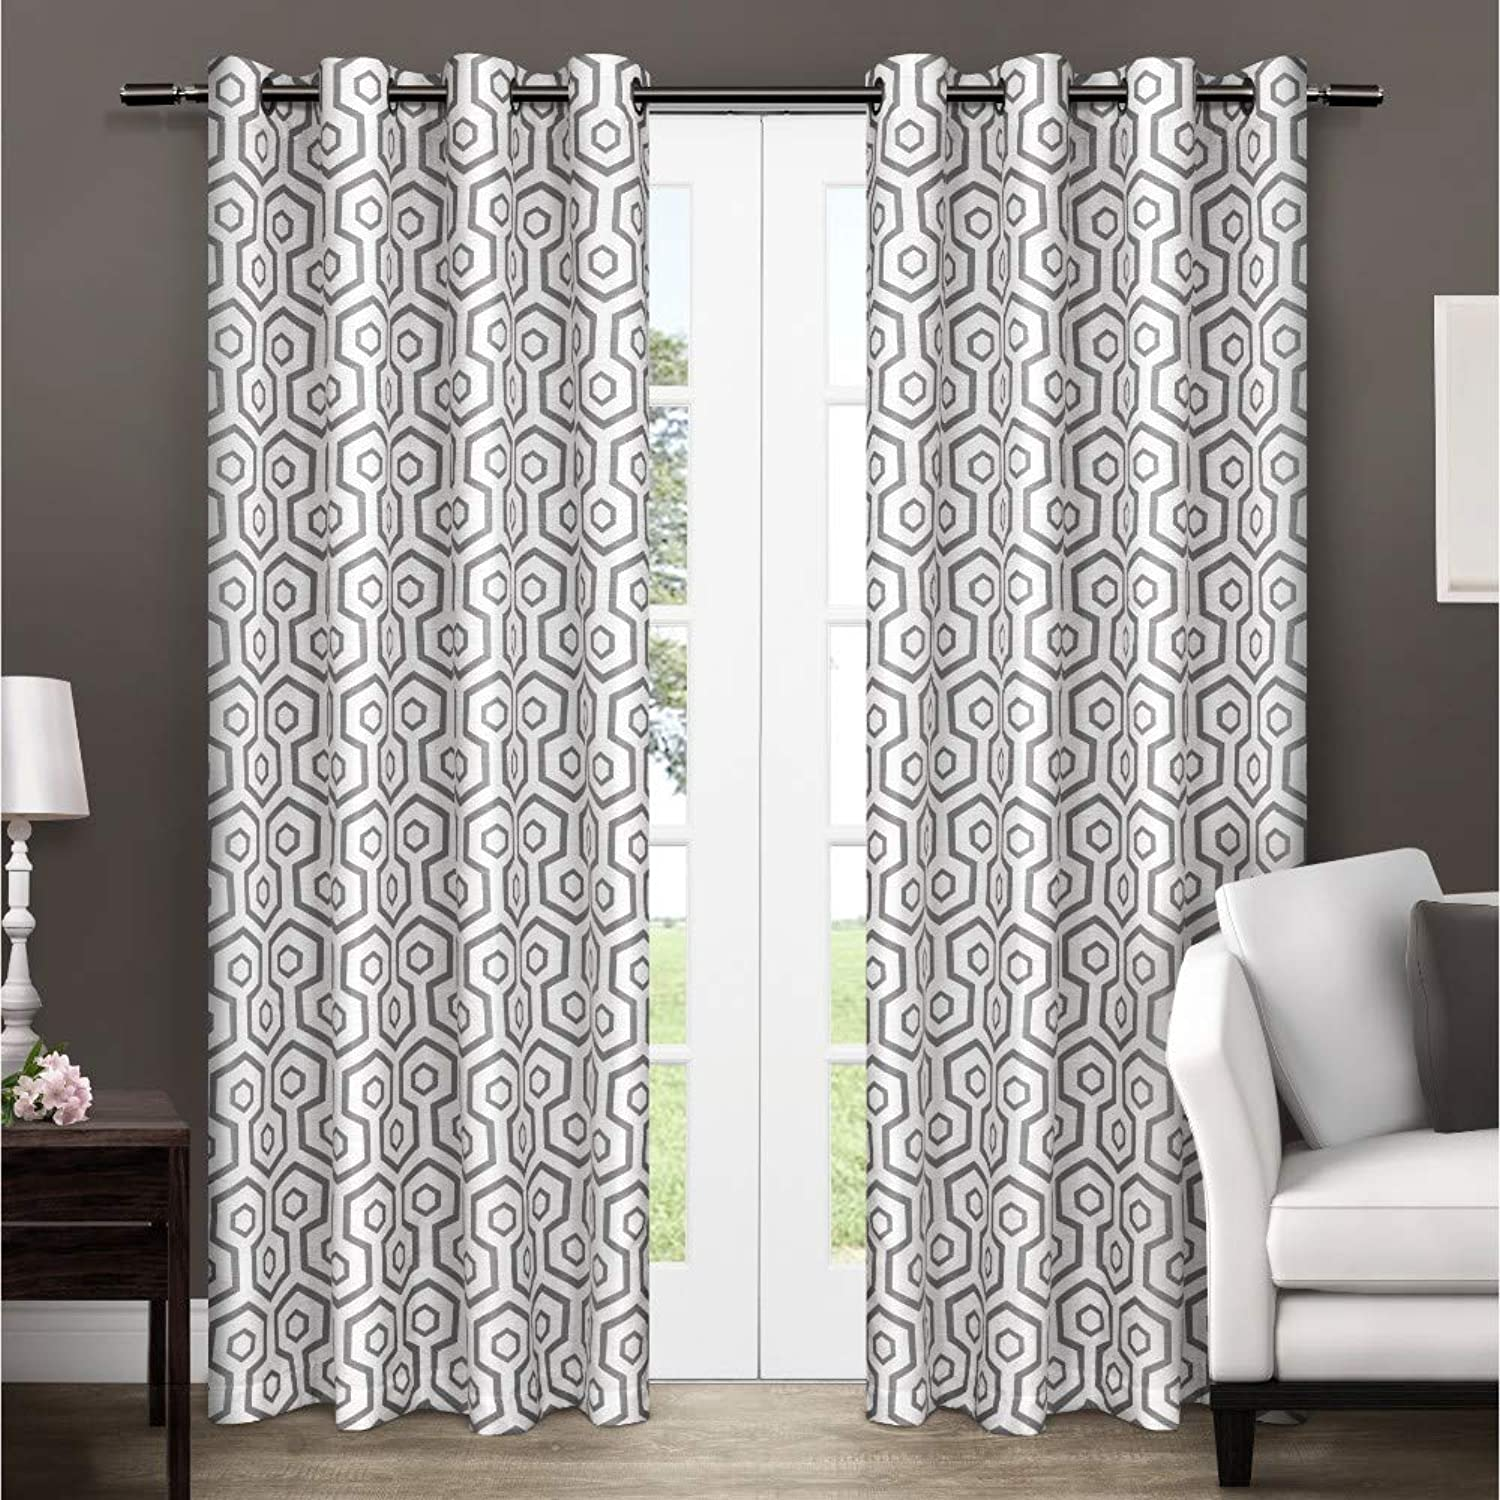 Exclusive Home Curtains Trike Geometric Thermal Window Curtain Panel Pair with Grommet Top, 54x84, Black Pearl, 2 Piece